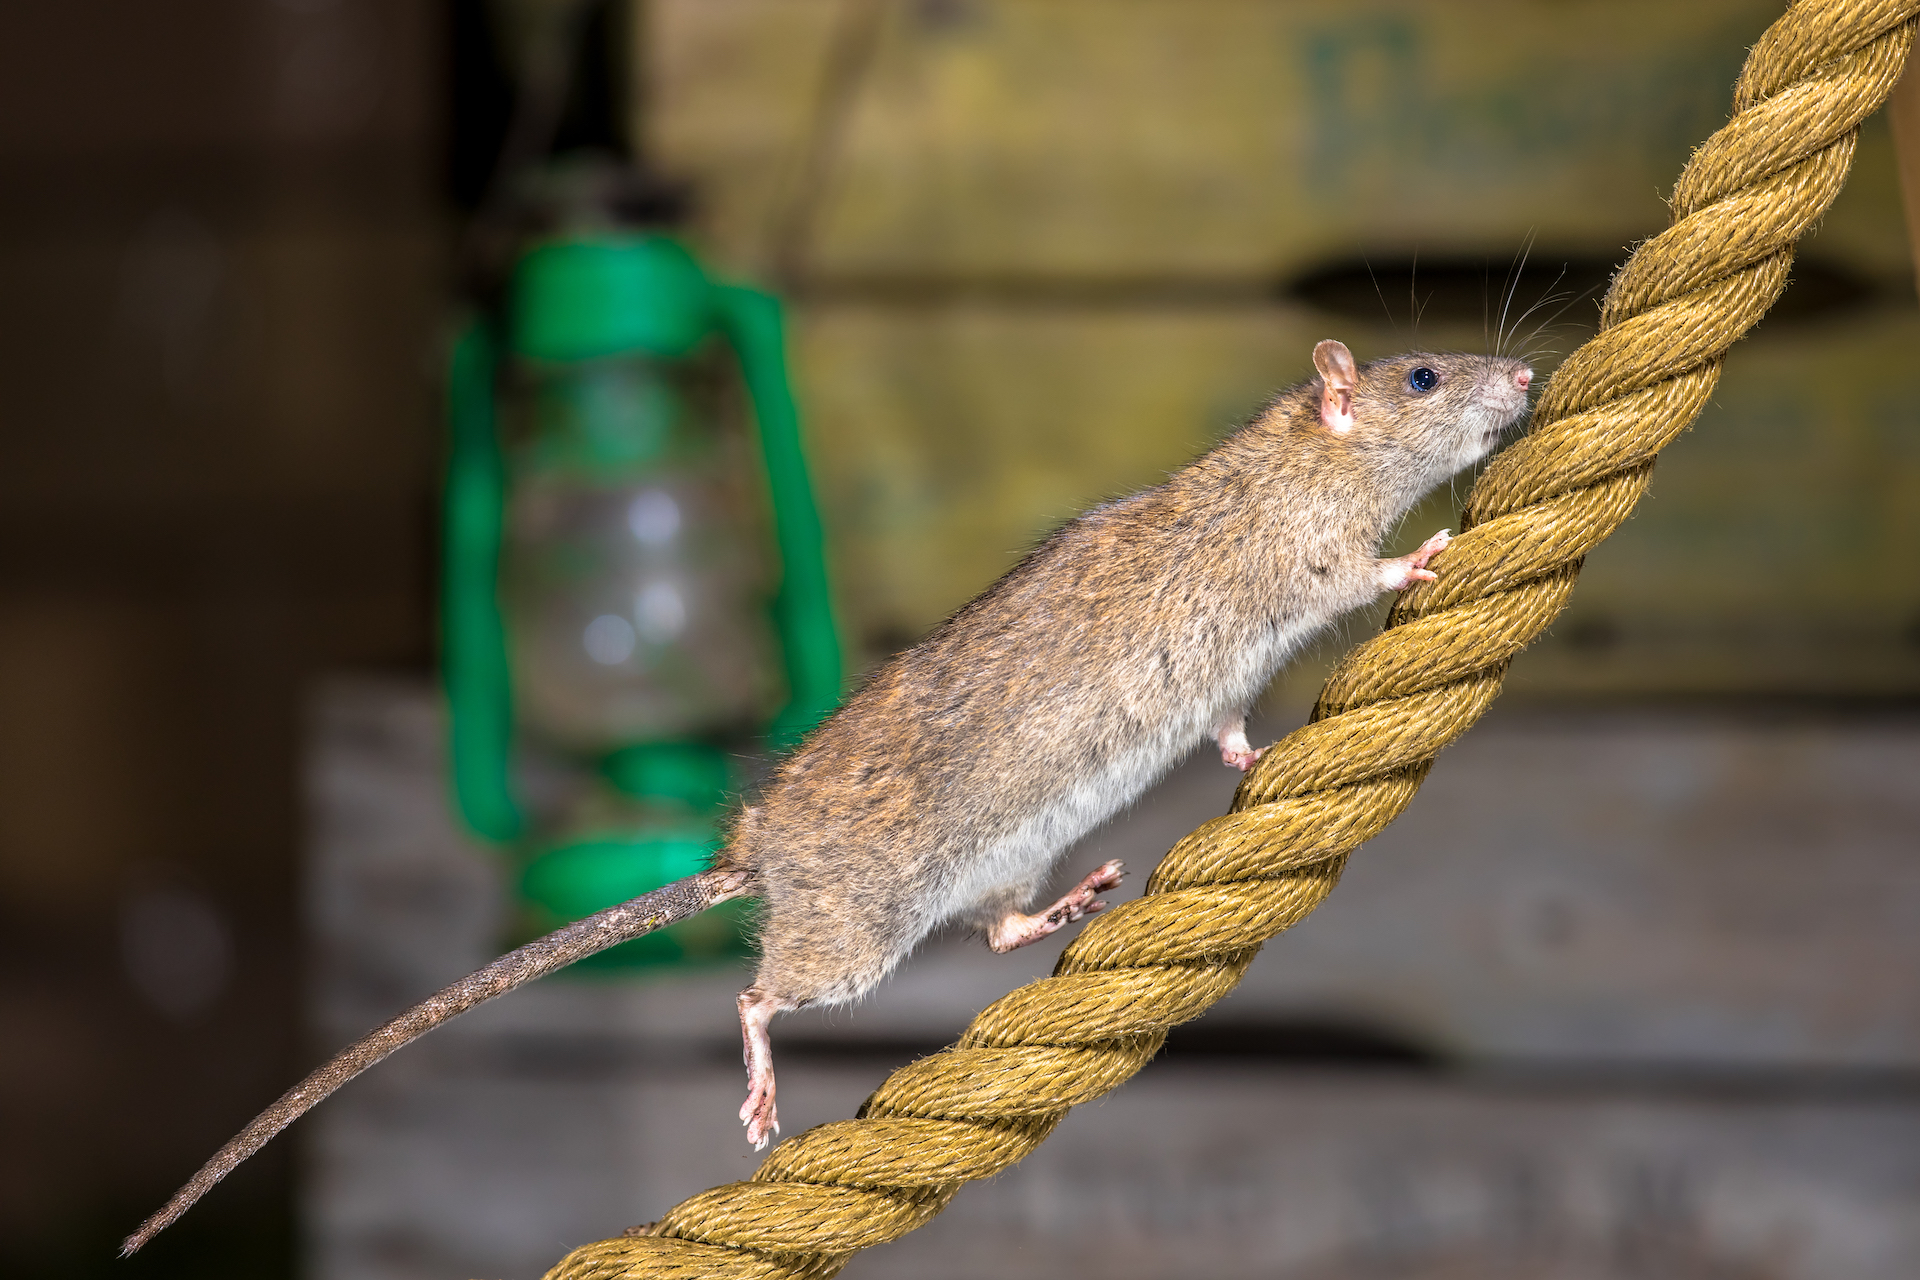 Rodent escaping during commercial pest control